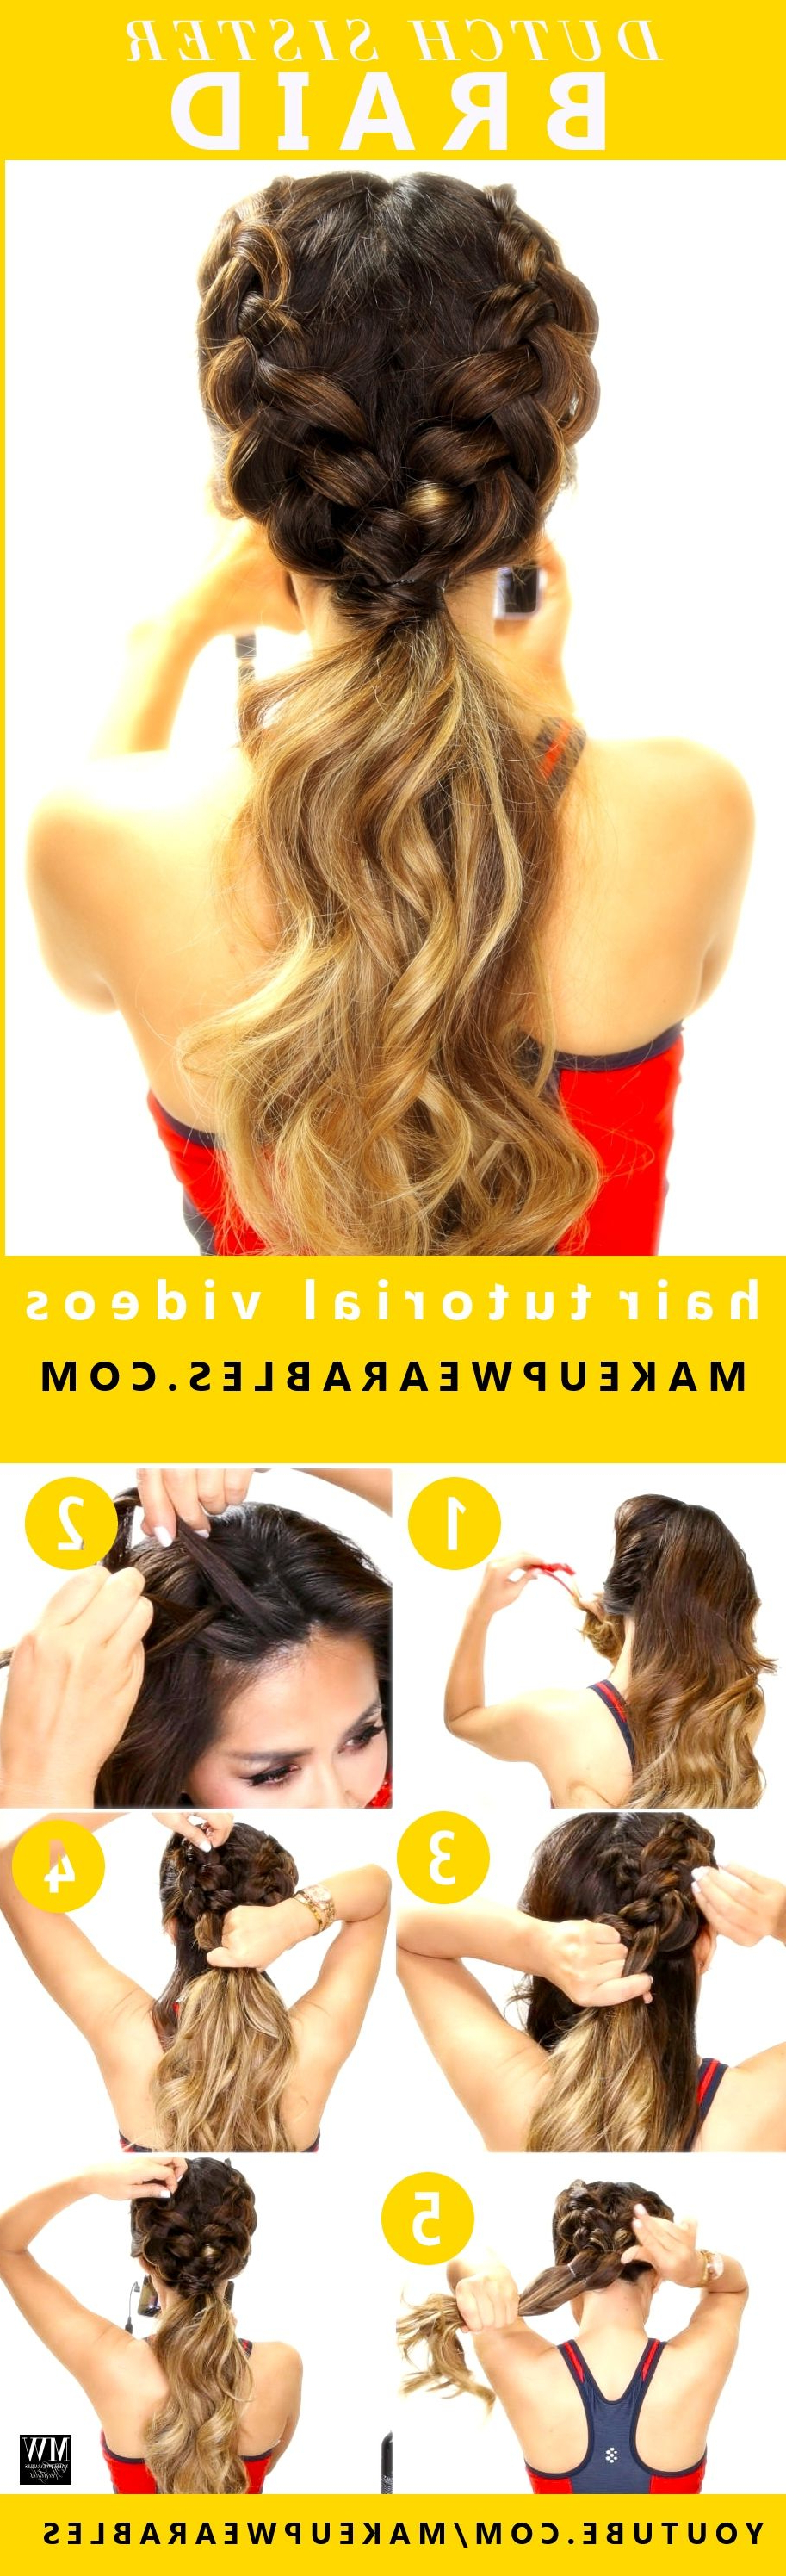 Hair Styles, Braided Pertaining To Fashionable Medium Hairstyles For Summer (View 14 of 20)